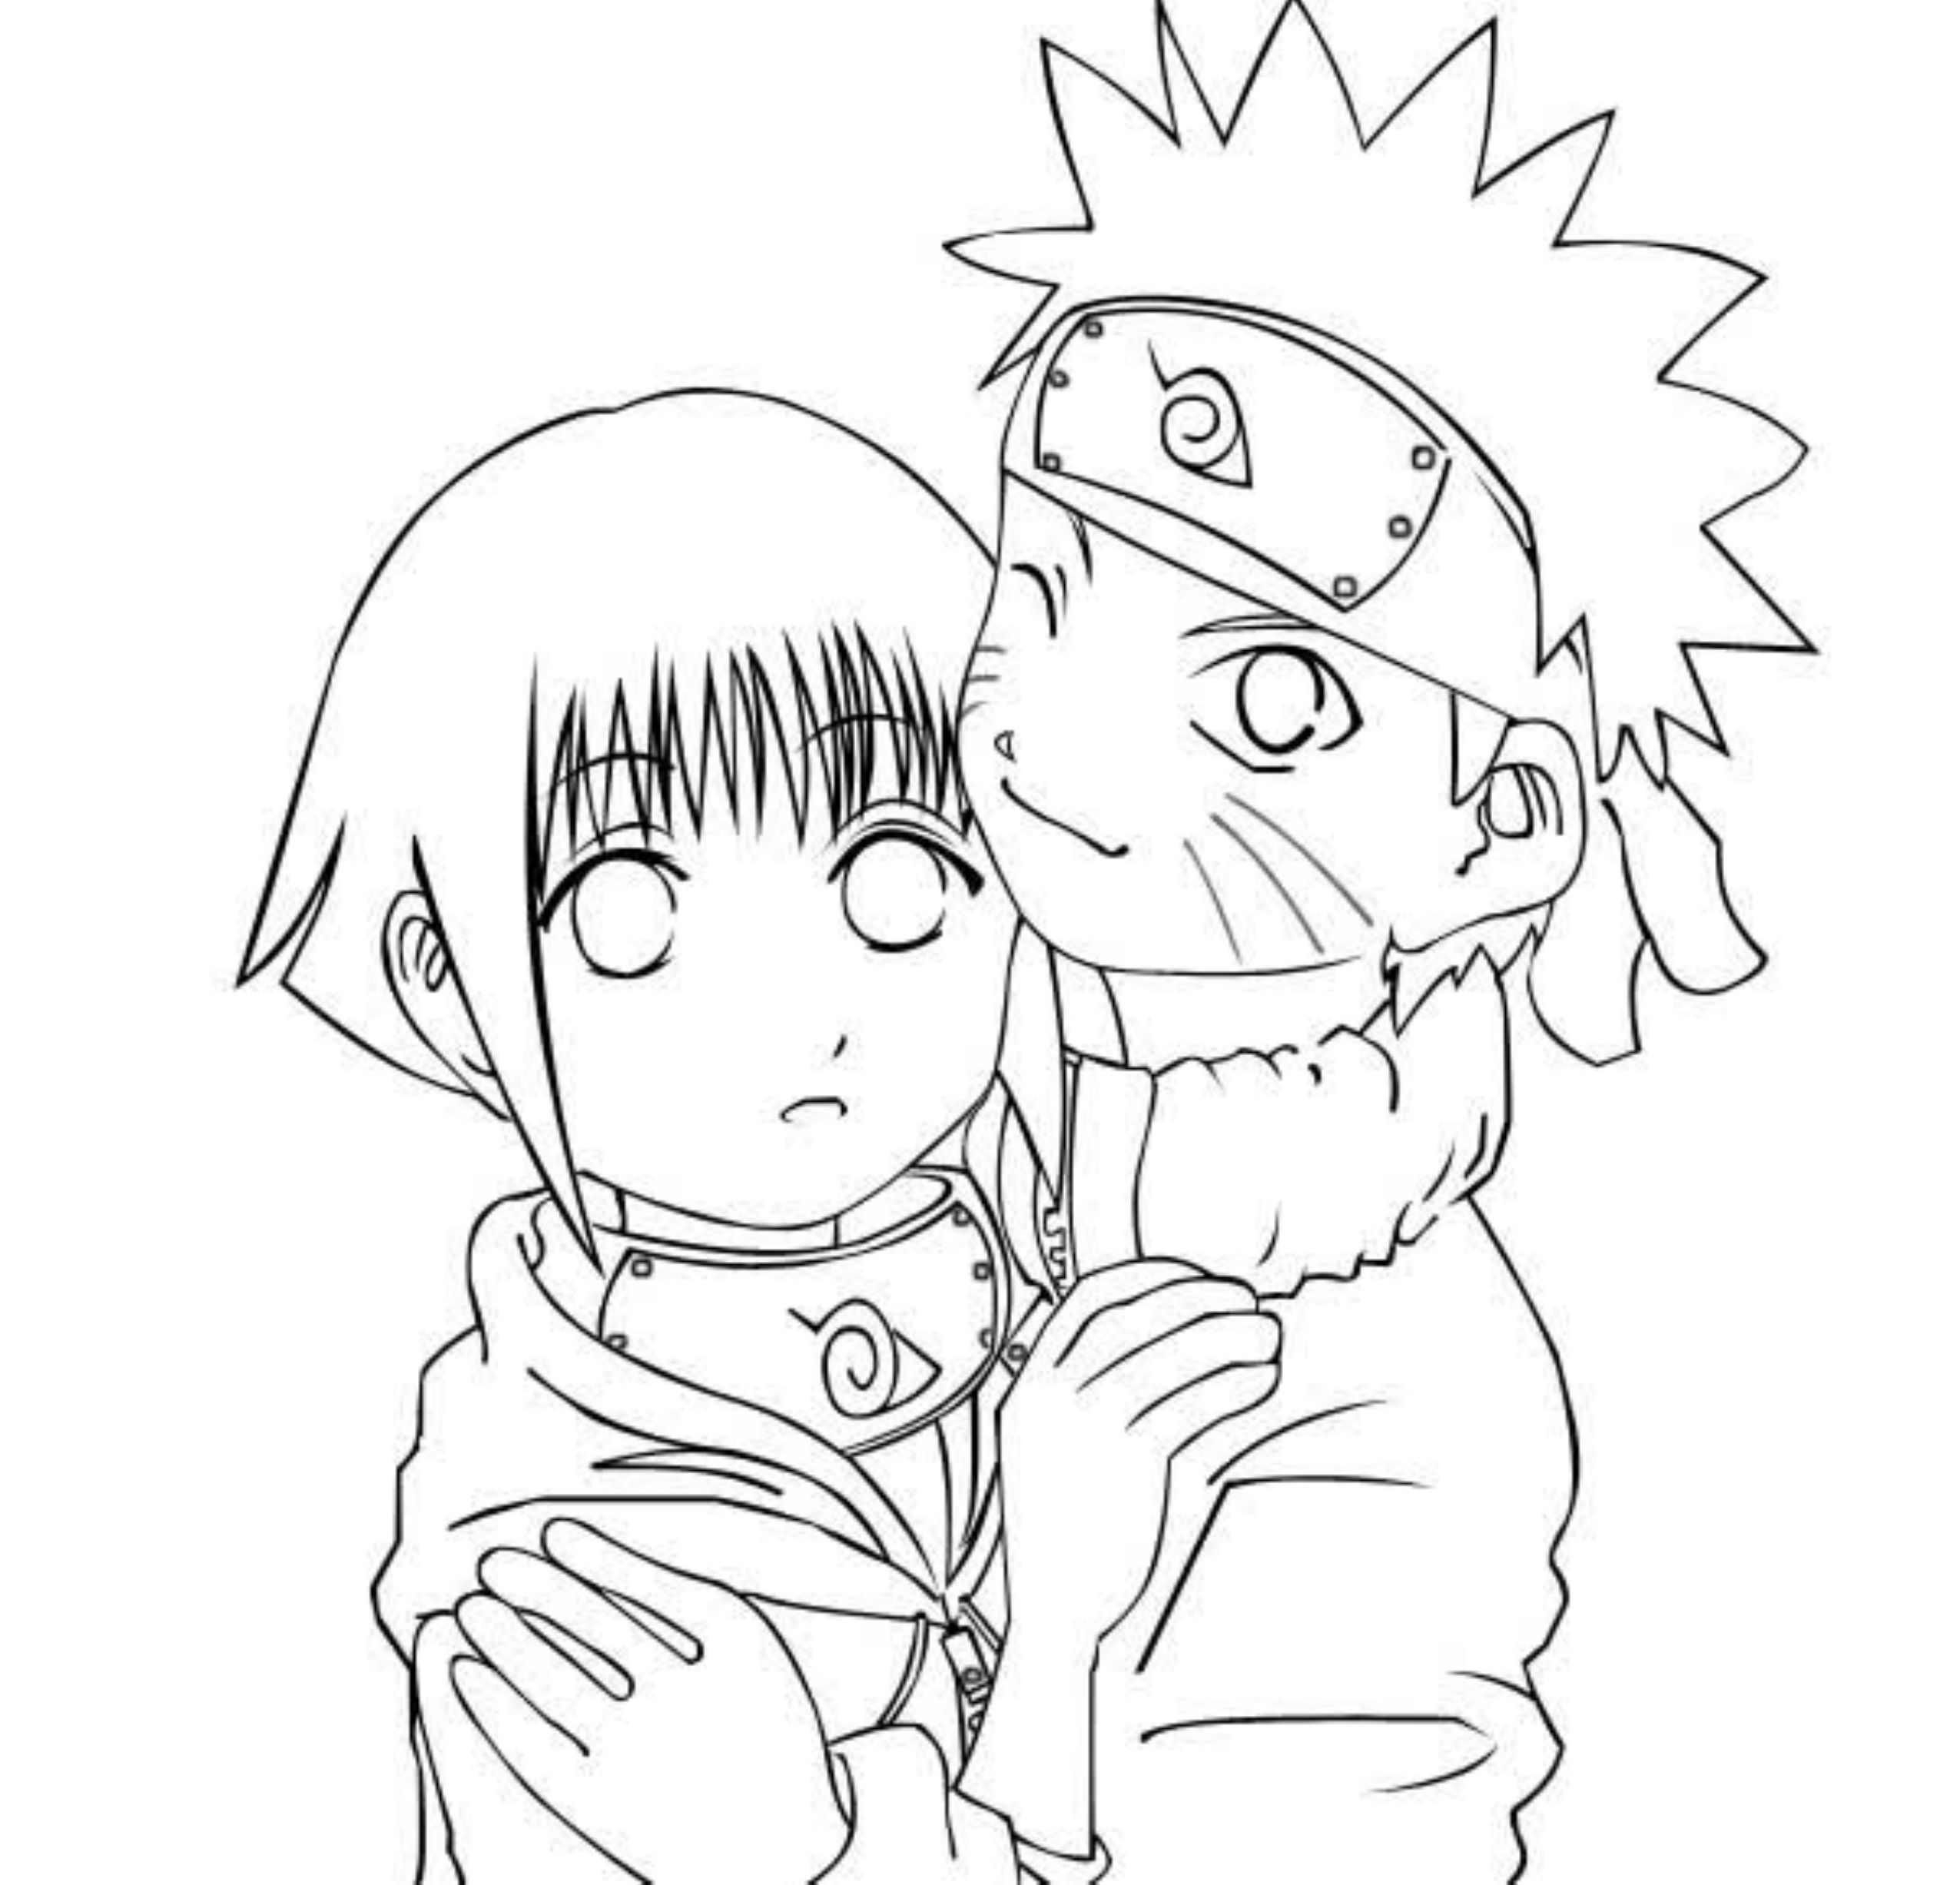 Anime Naruto Coloring Pages Aptitude Anime Naruto Coloring Pages Cartoon Coloring Pages Of